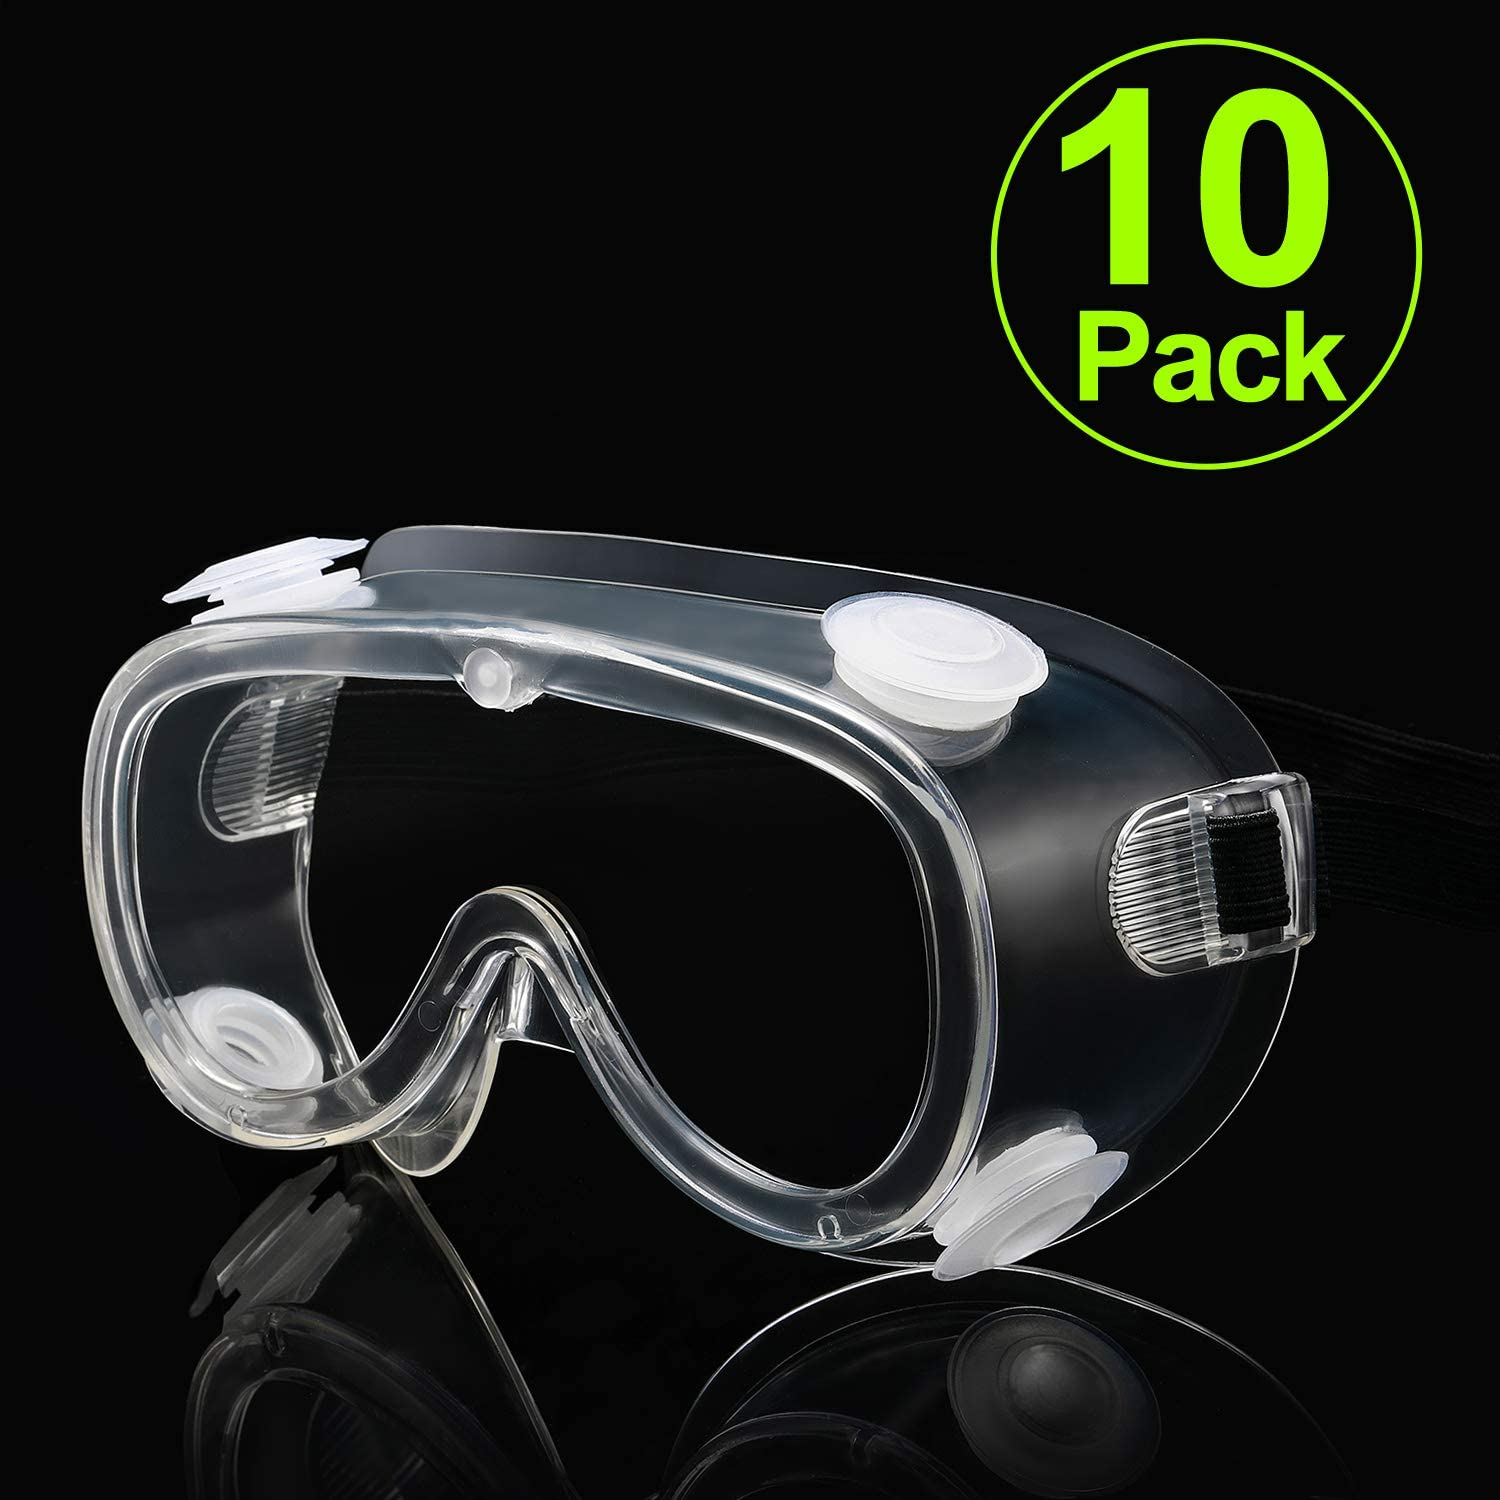 10 Packs CARFIA Indirect Vent Safety Goggles Over Glasses for Home & Workplace, UV400 Clear Anti-Fog Scratch Resistant Wrap-Around Lenses